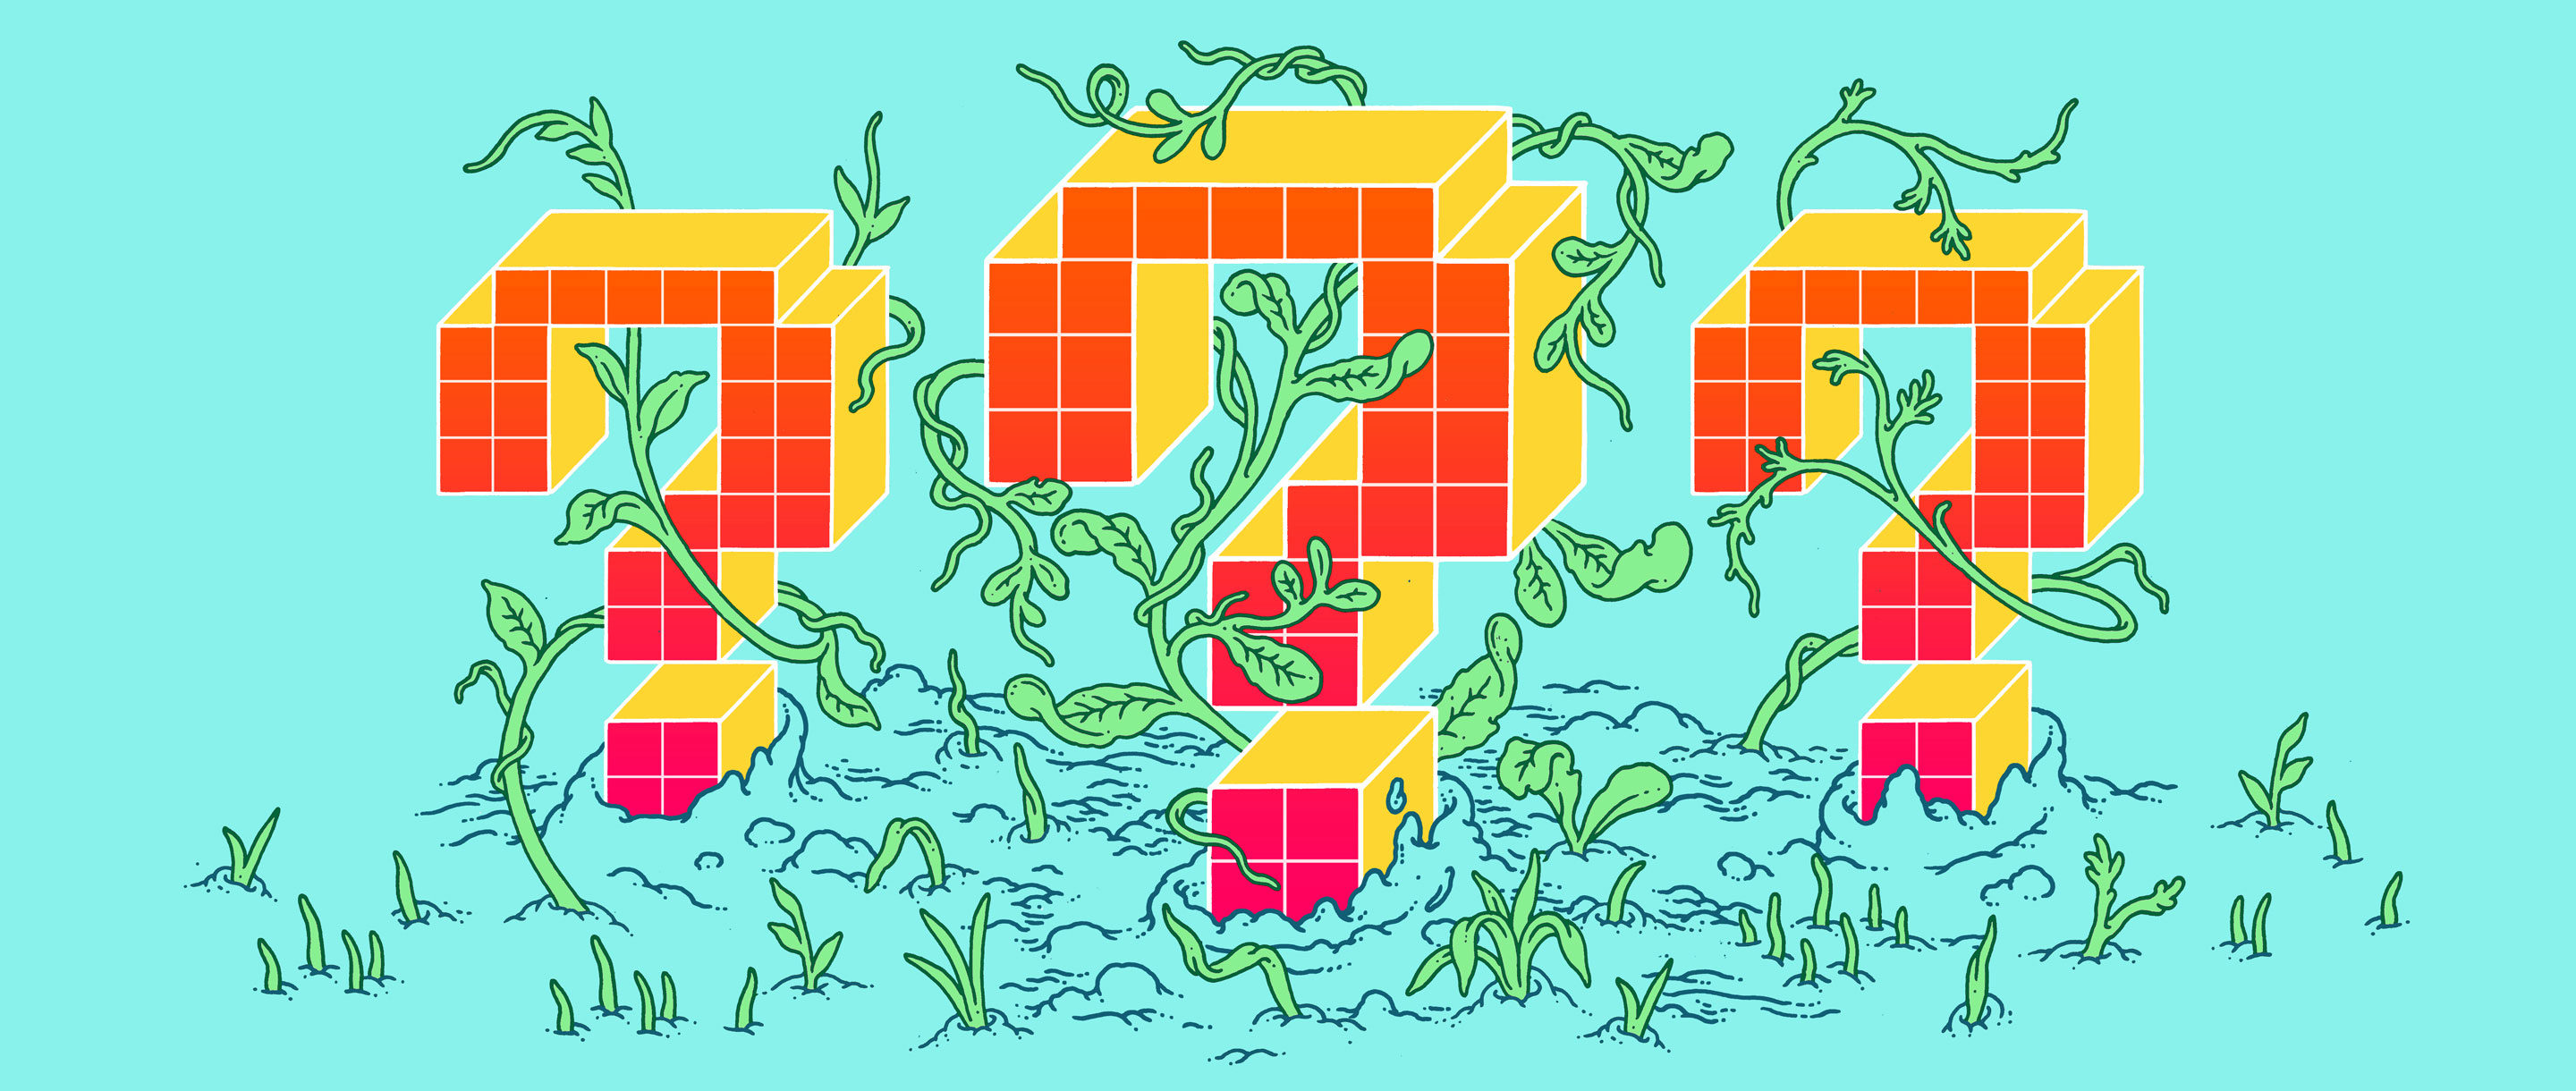 Digital question marks surrounded by vines